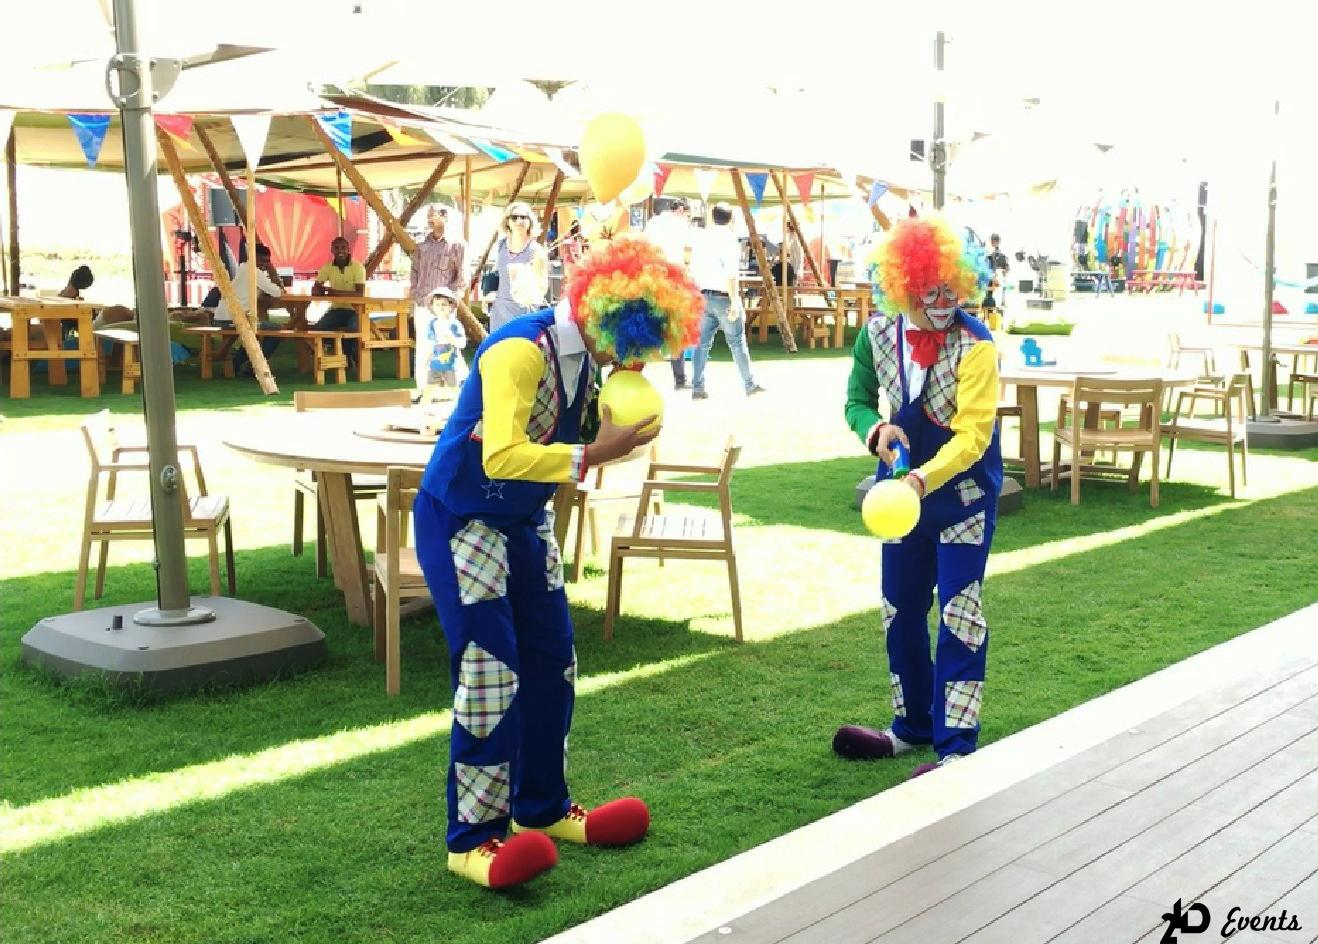 2ID - FUNNY CLOWNS DUO FOR THE PUBLIC EVENT